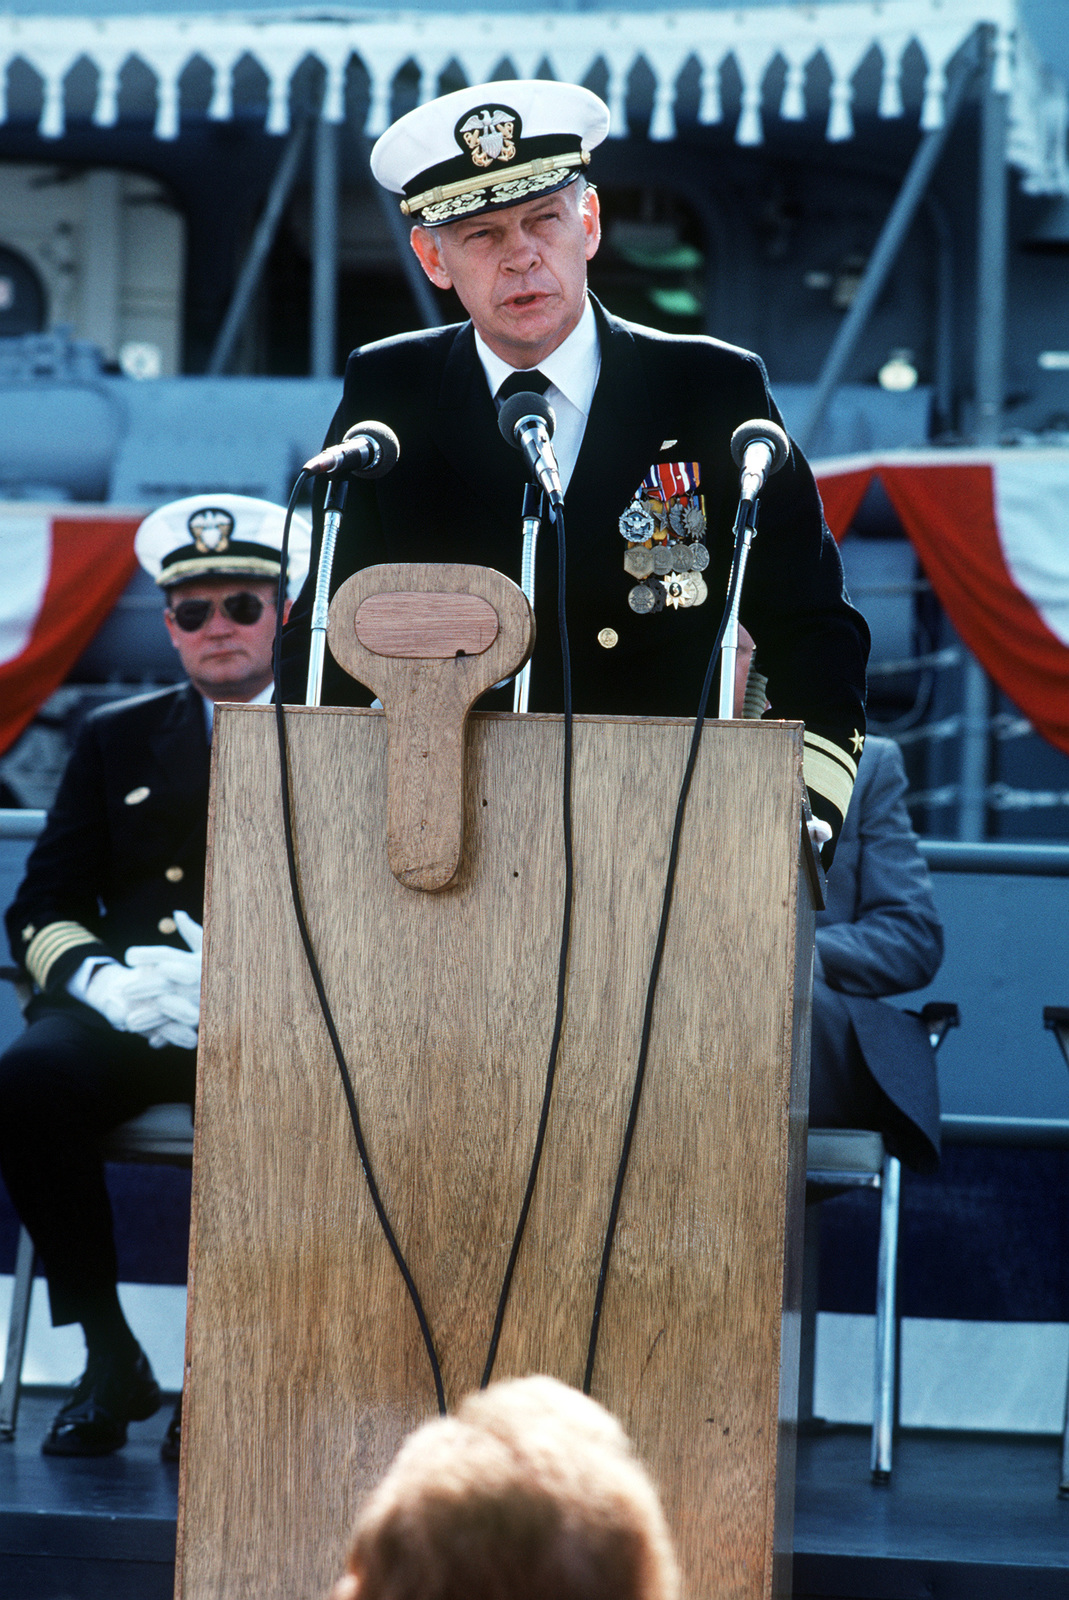 Rear Admiral Paul T. Gillerist, commander, Naval Base San Diego, speaks during the commissioning ceremony for the Oliver Hazard Perry class guided missile frigate USS JOHN A. MOORE (FFG 19). Seated behind him is Captain David Kalb, Supervisor of Shipbuilding, Conversion and Repair